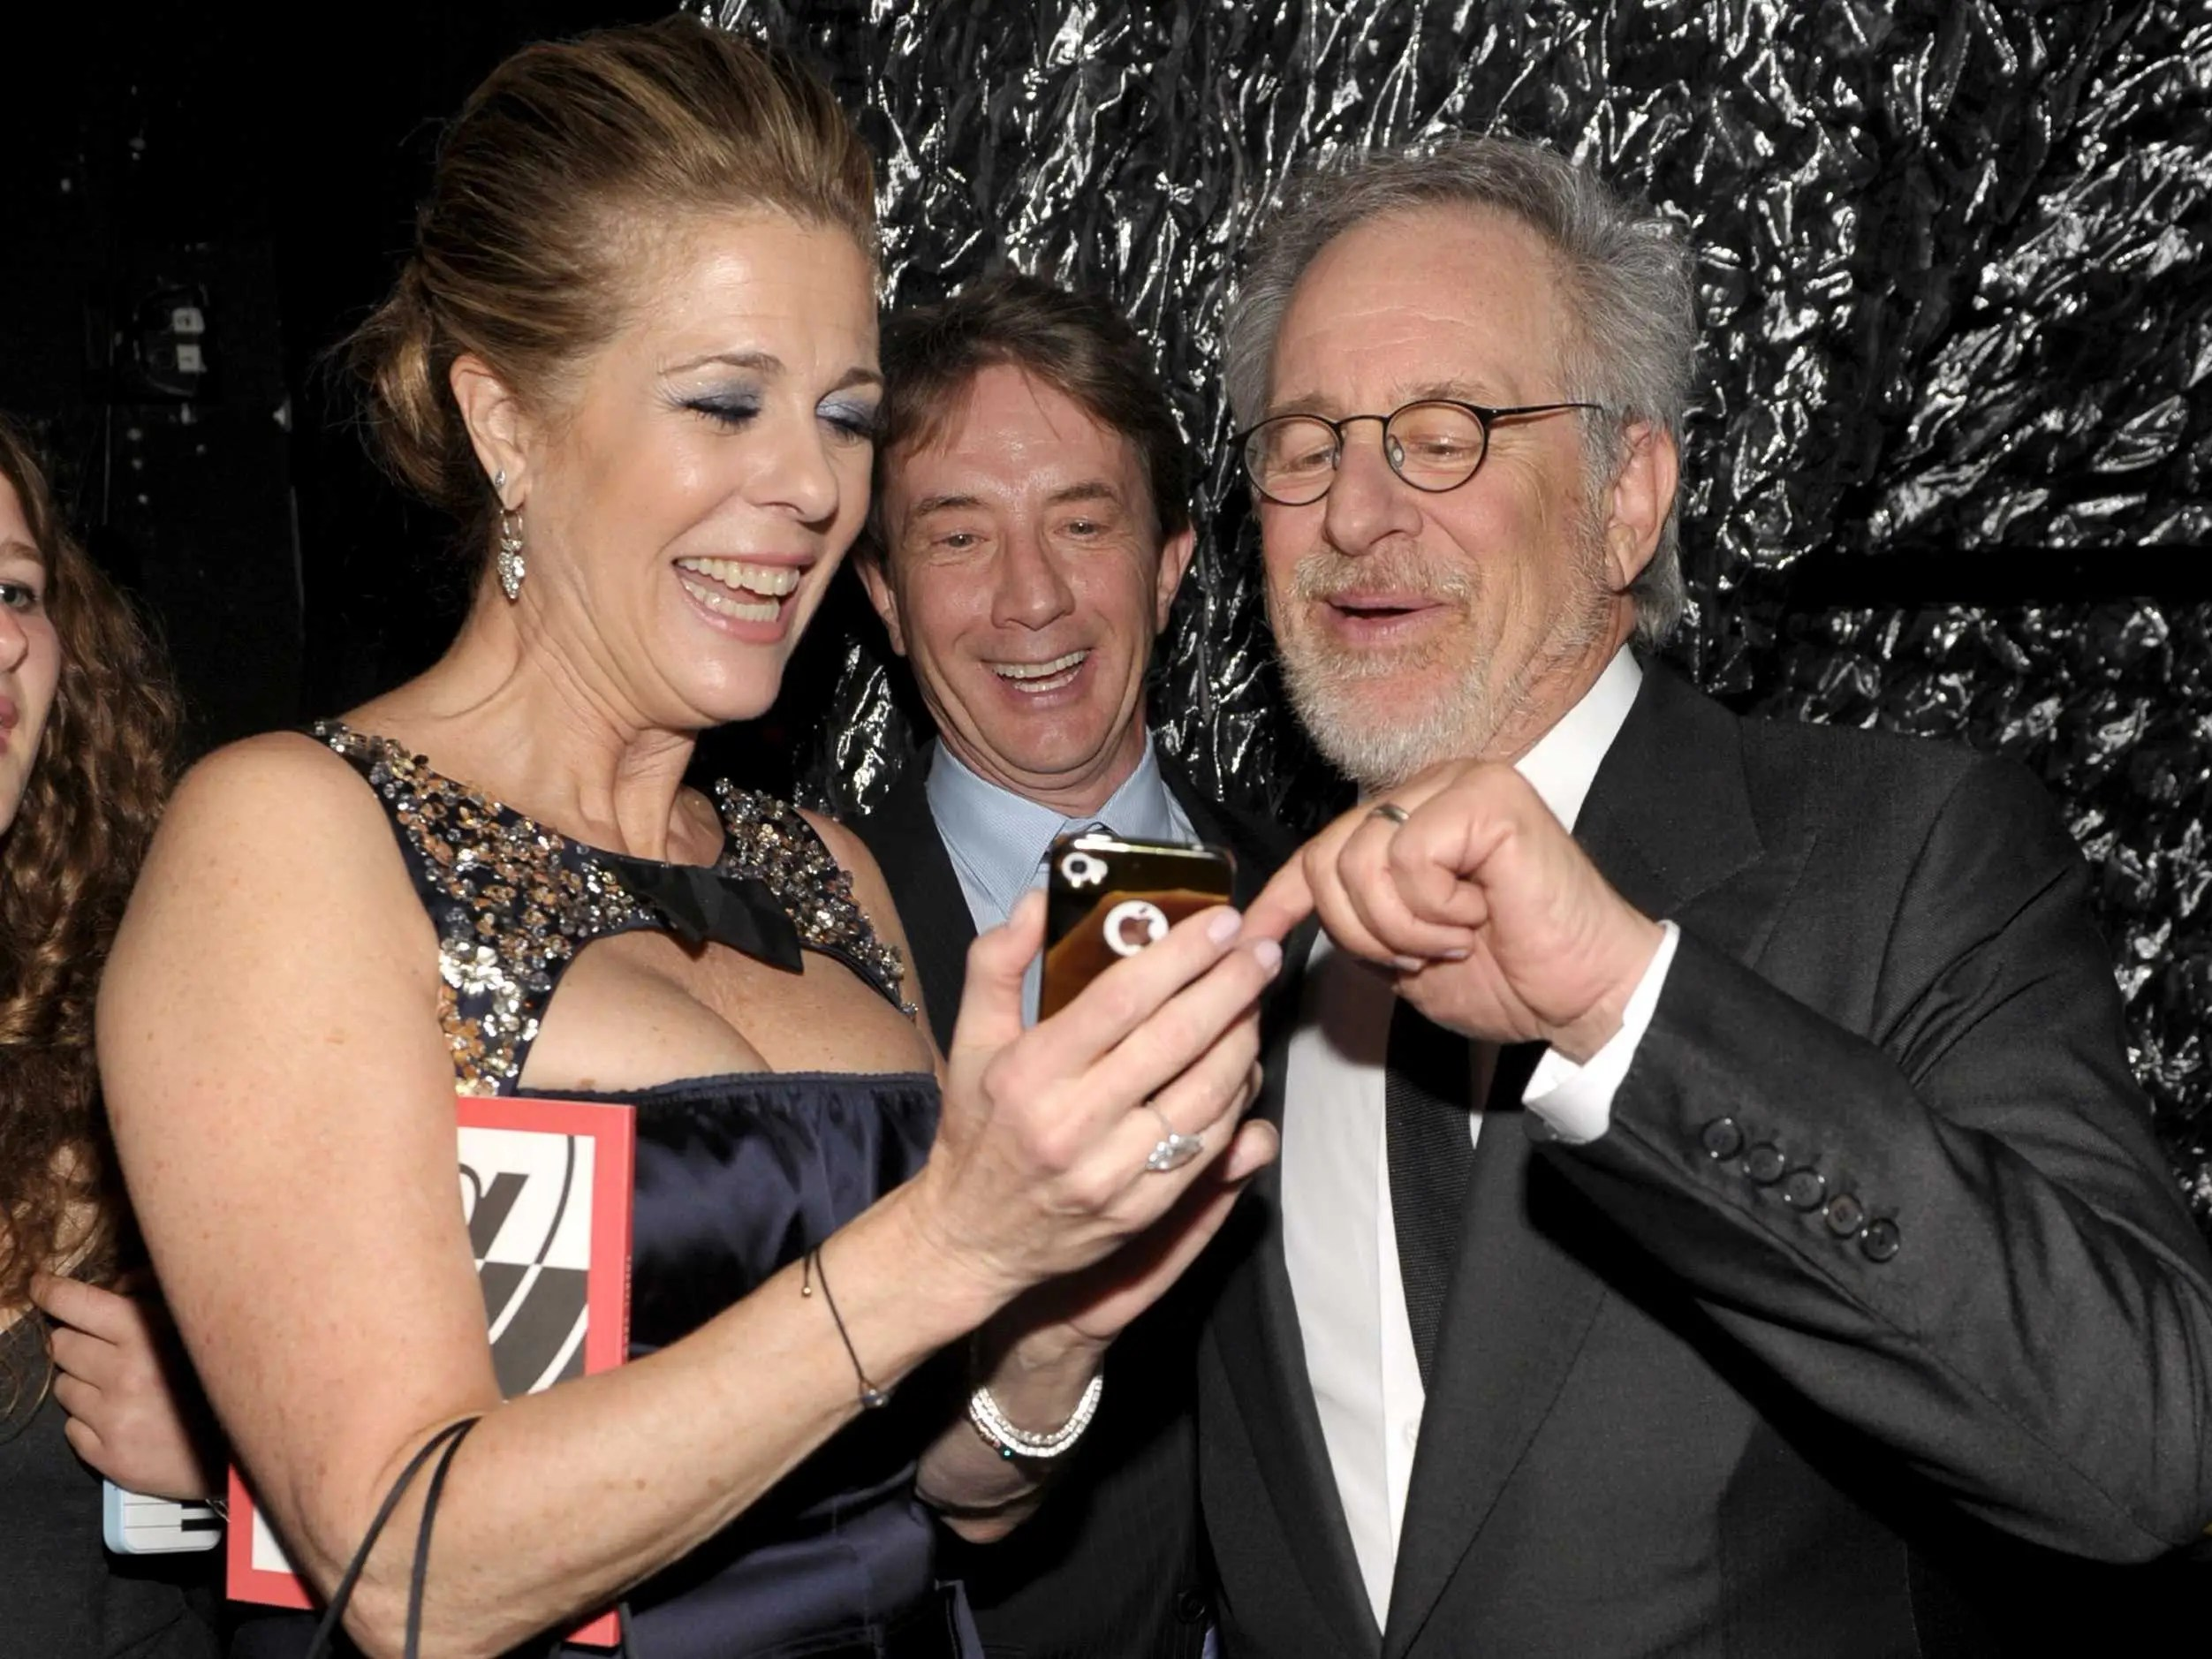 April 2012: Rita Wilson, Martin Short, and Steven Spielberg all look at Wilson's customized gold iPhone at a fundraiser in Beverly Hills.